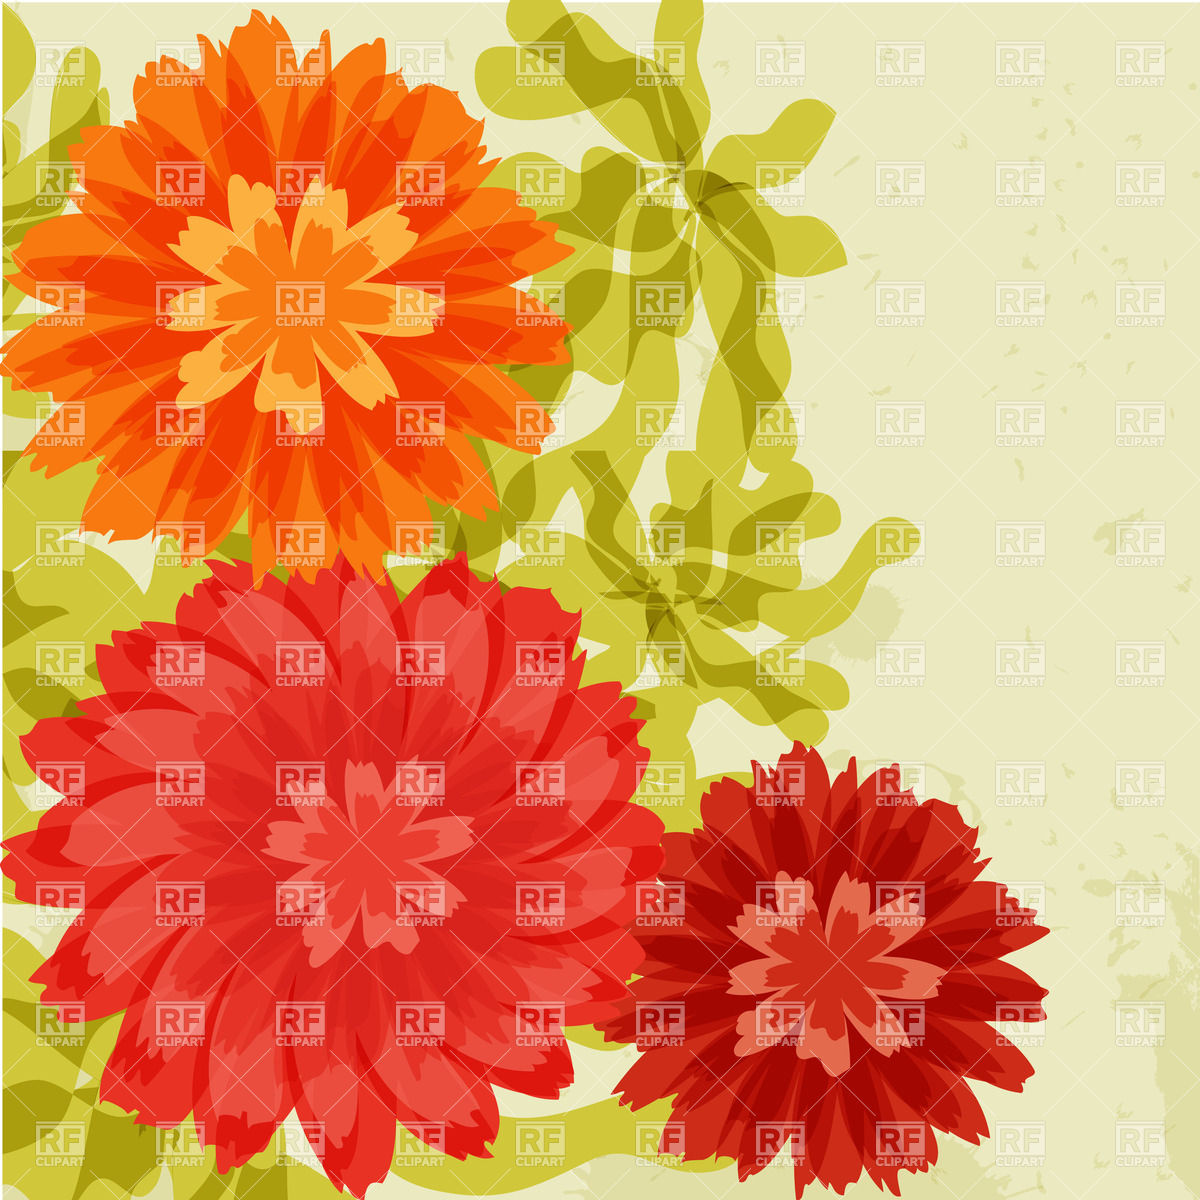 clip art chrysanthemum flowers.